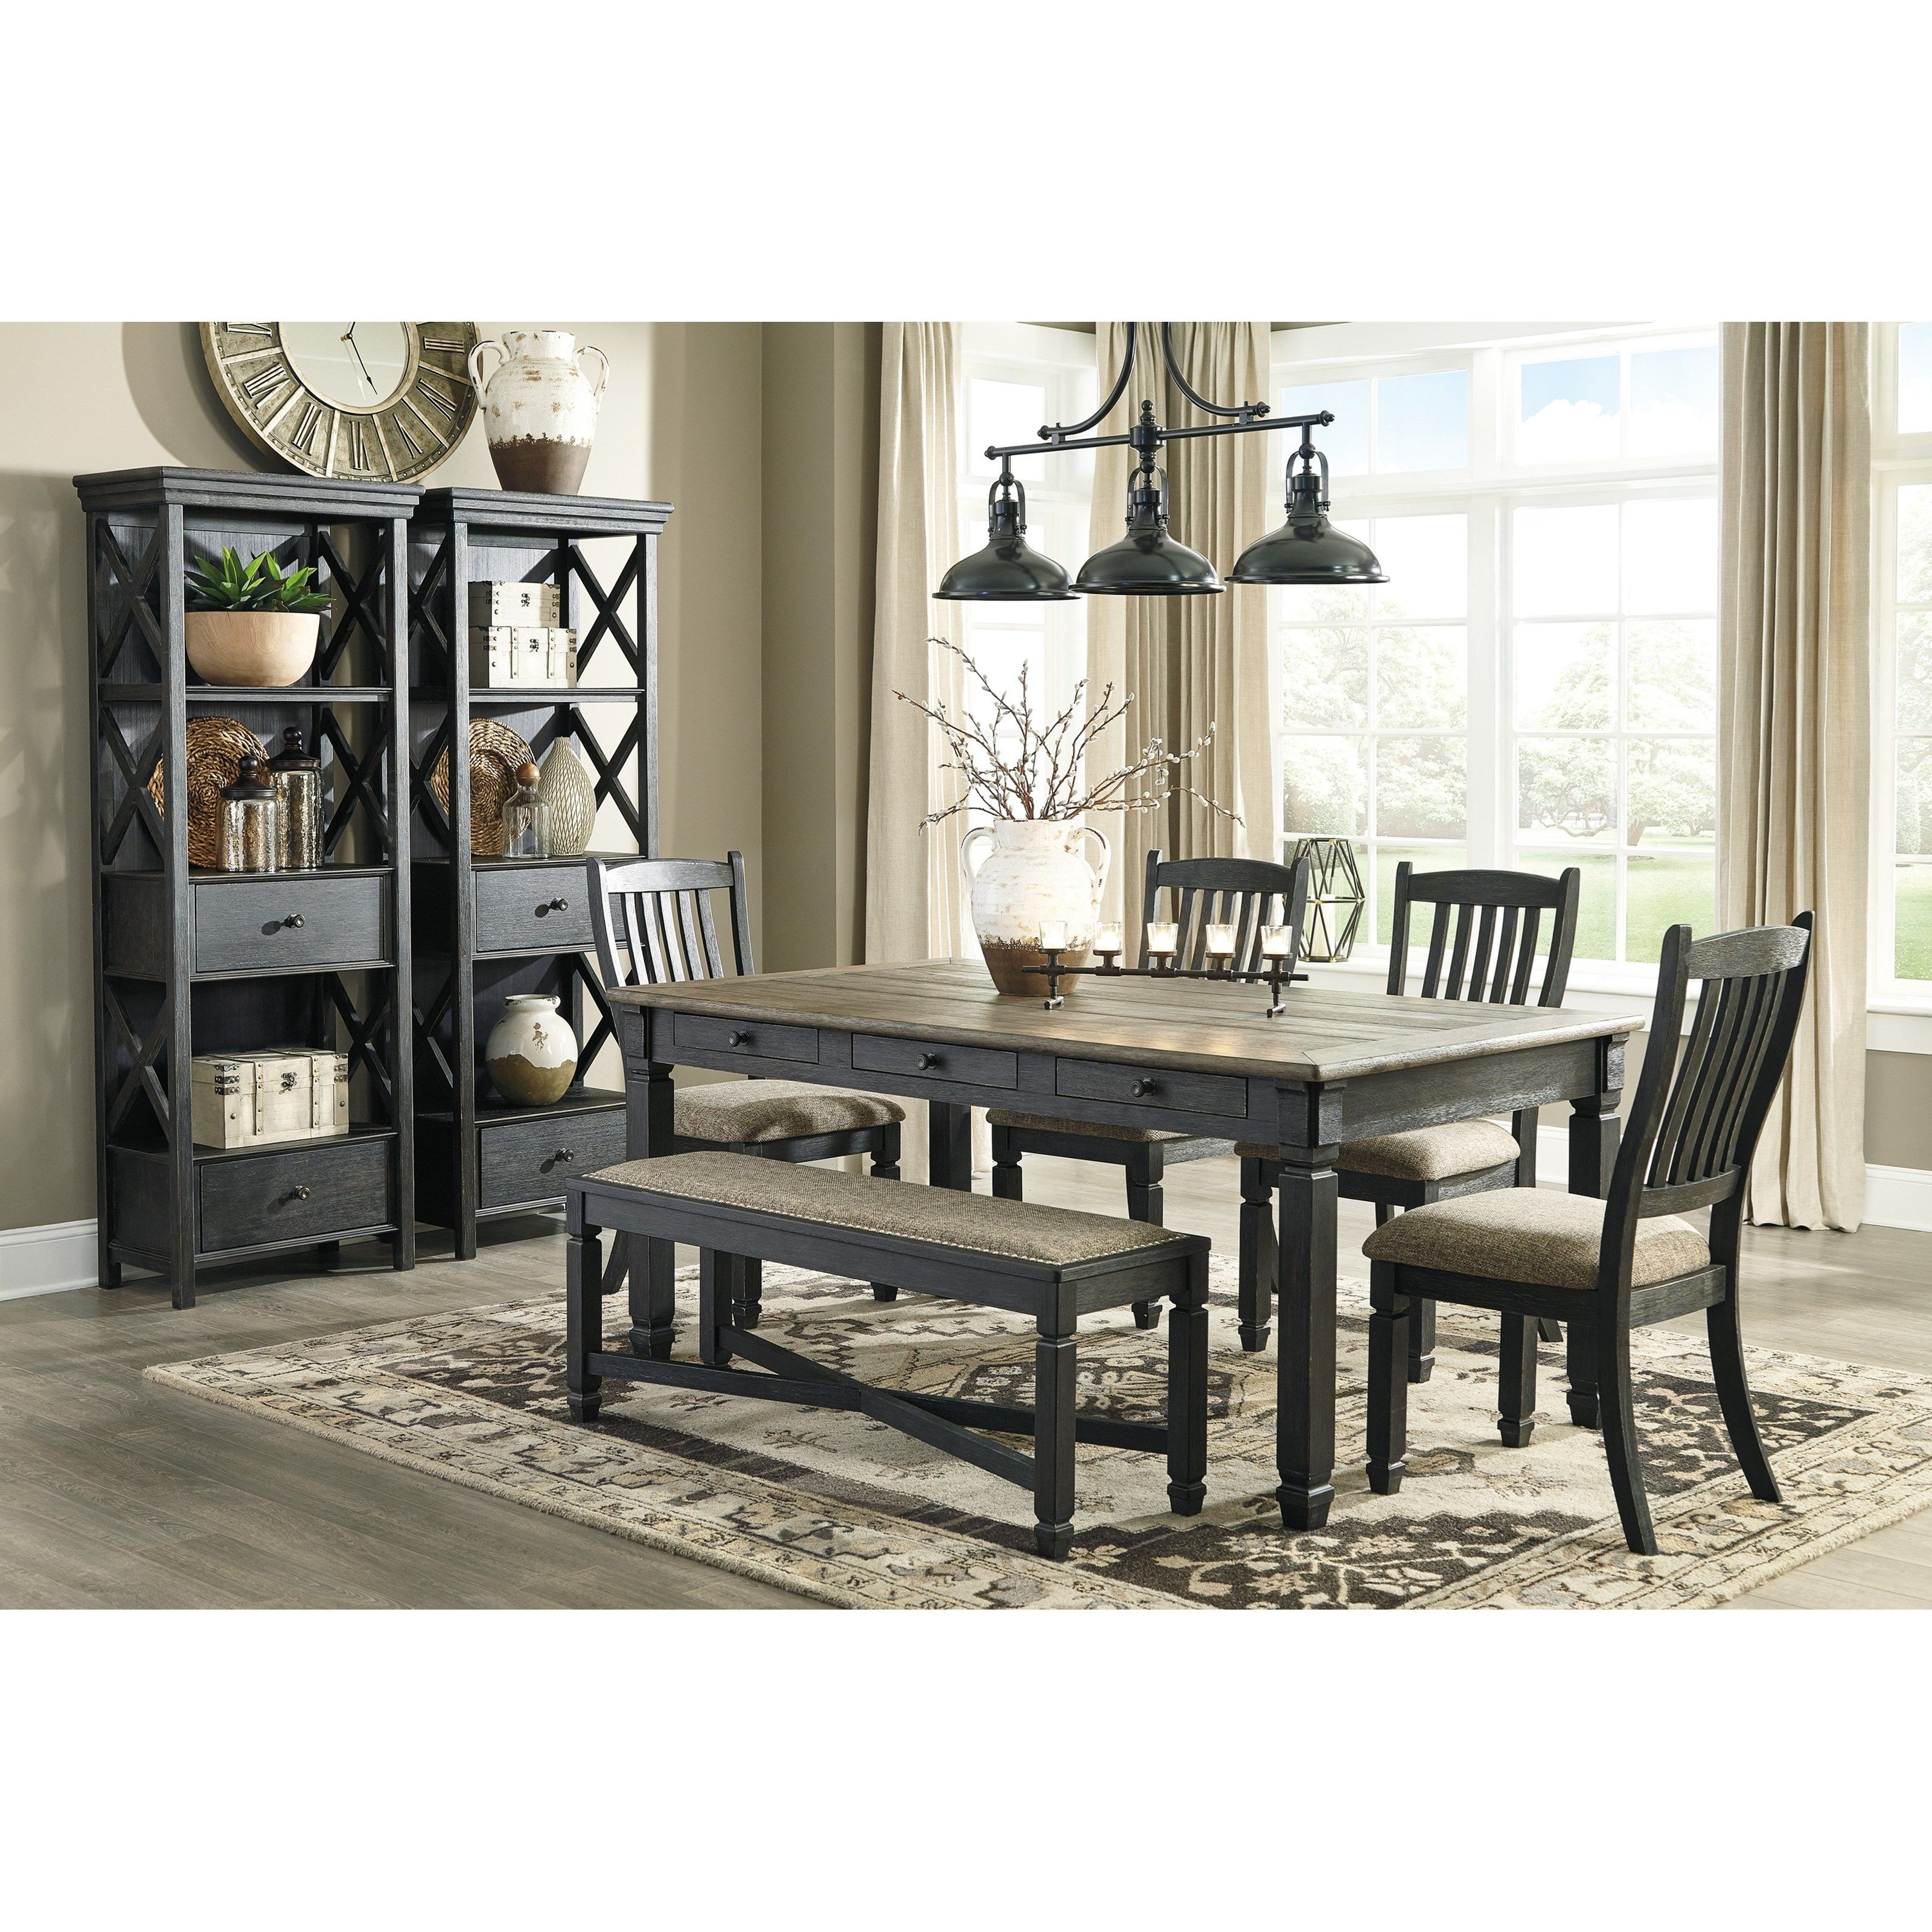 Tyler Creek Formal Dining Room Group By Signature Design